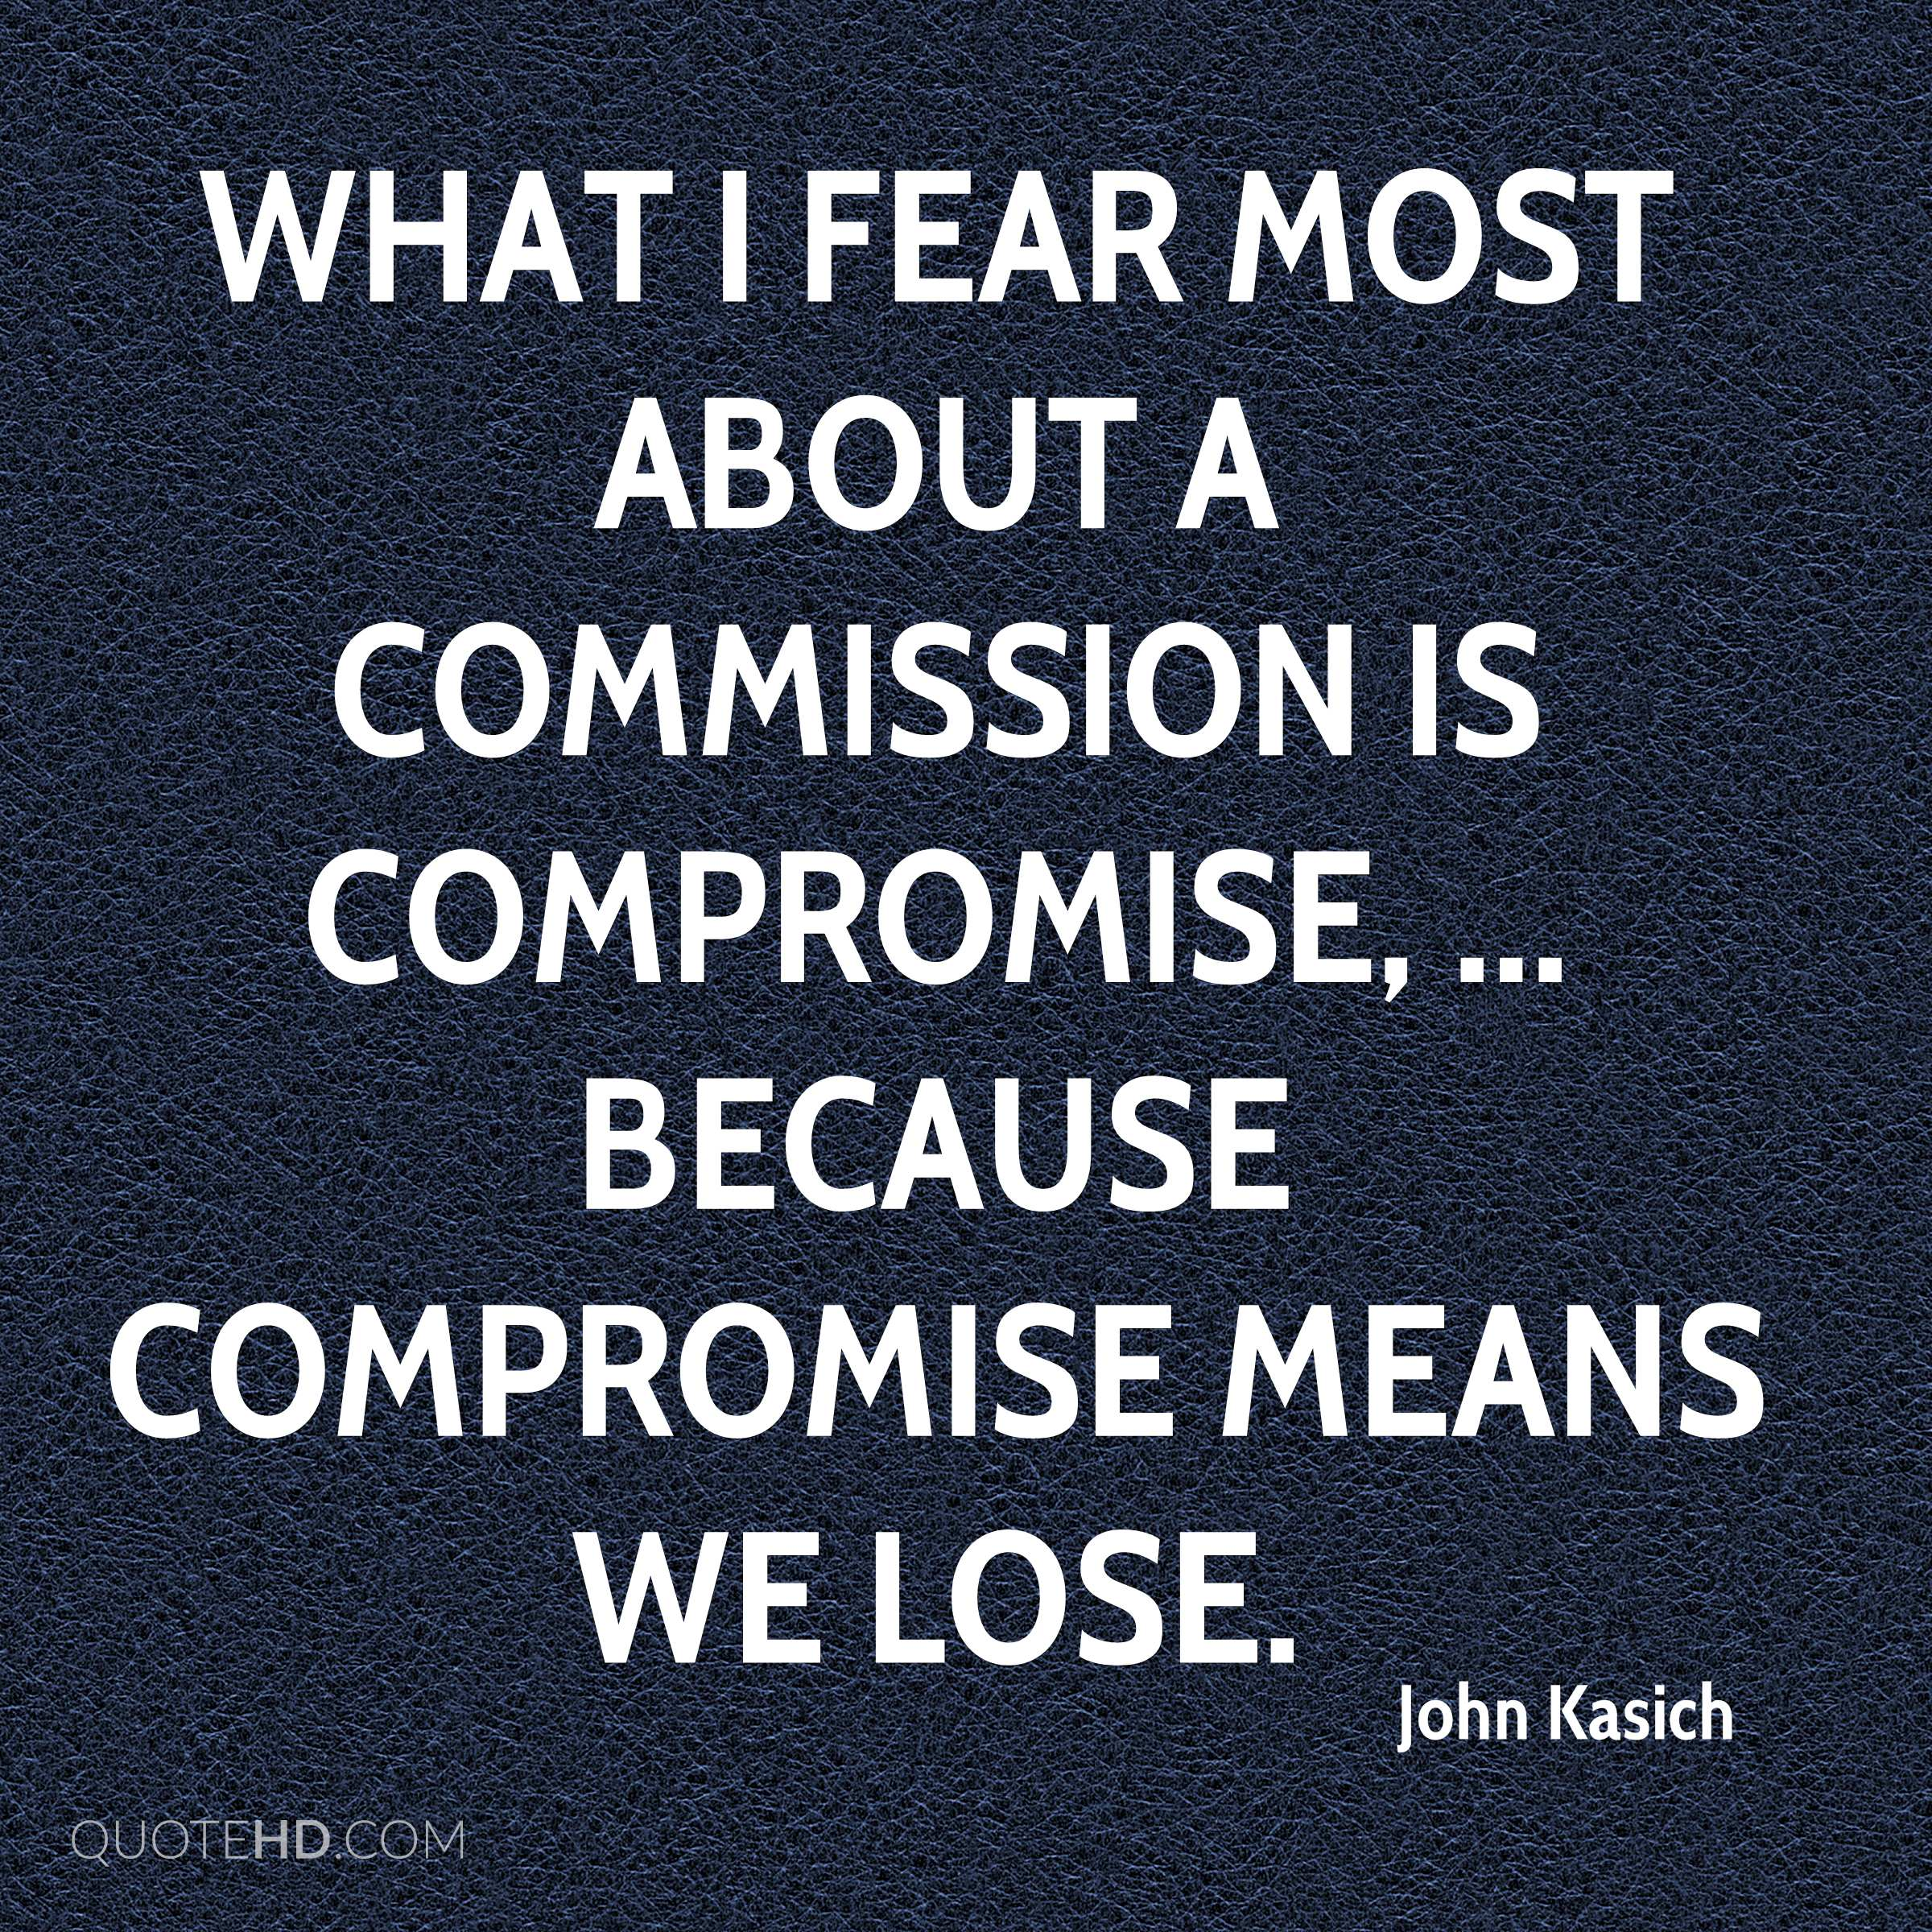 What I fear most about a commission is compromise, ... Because compromise means we lose.